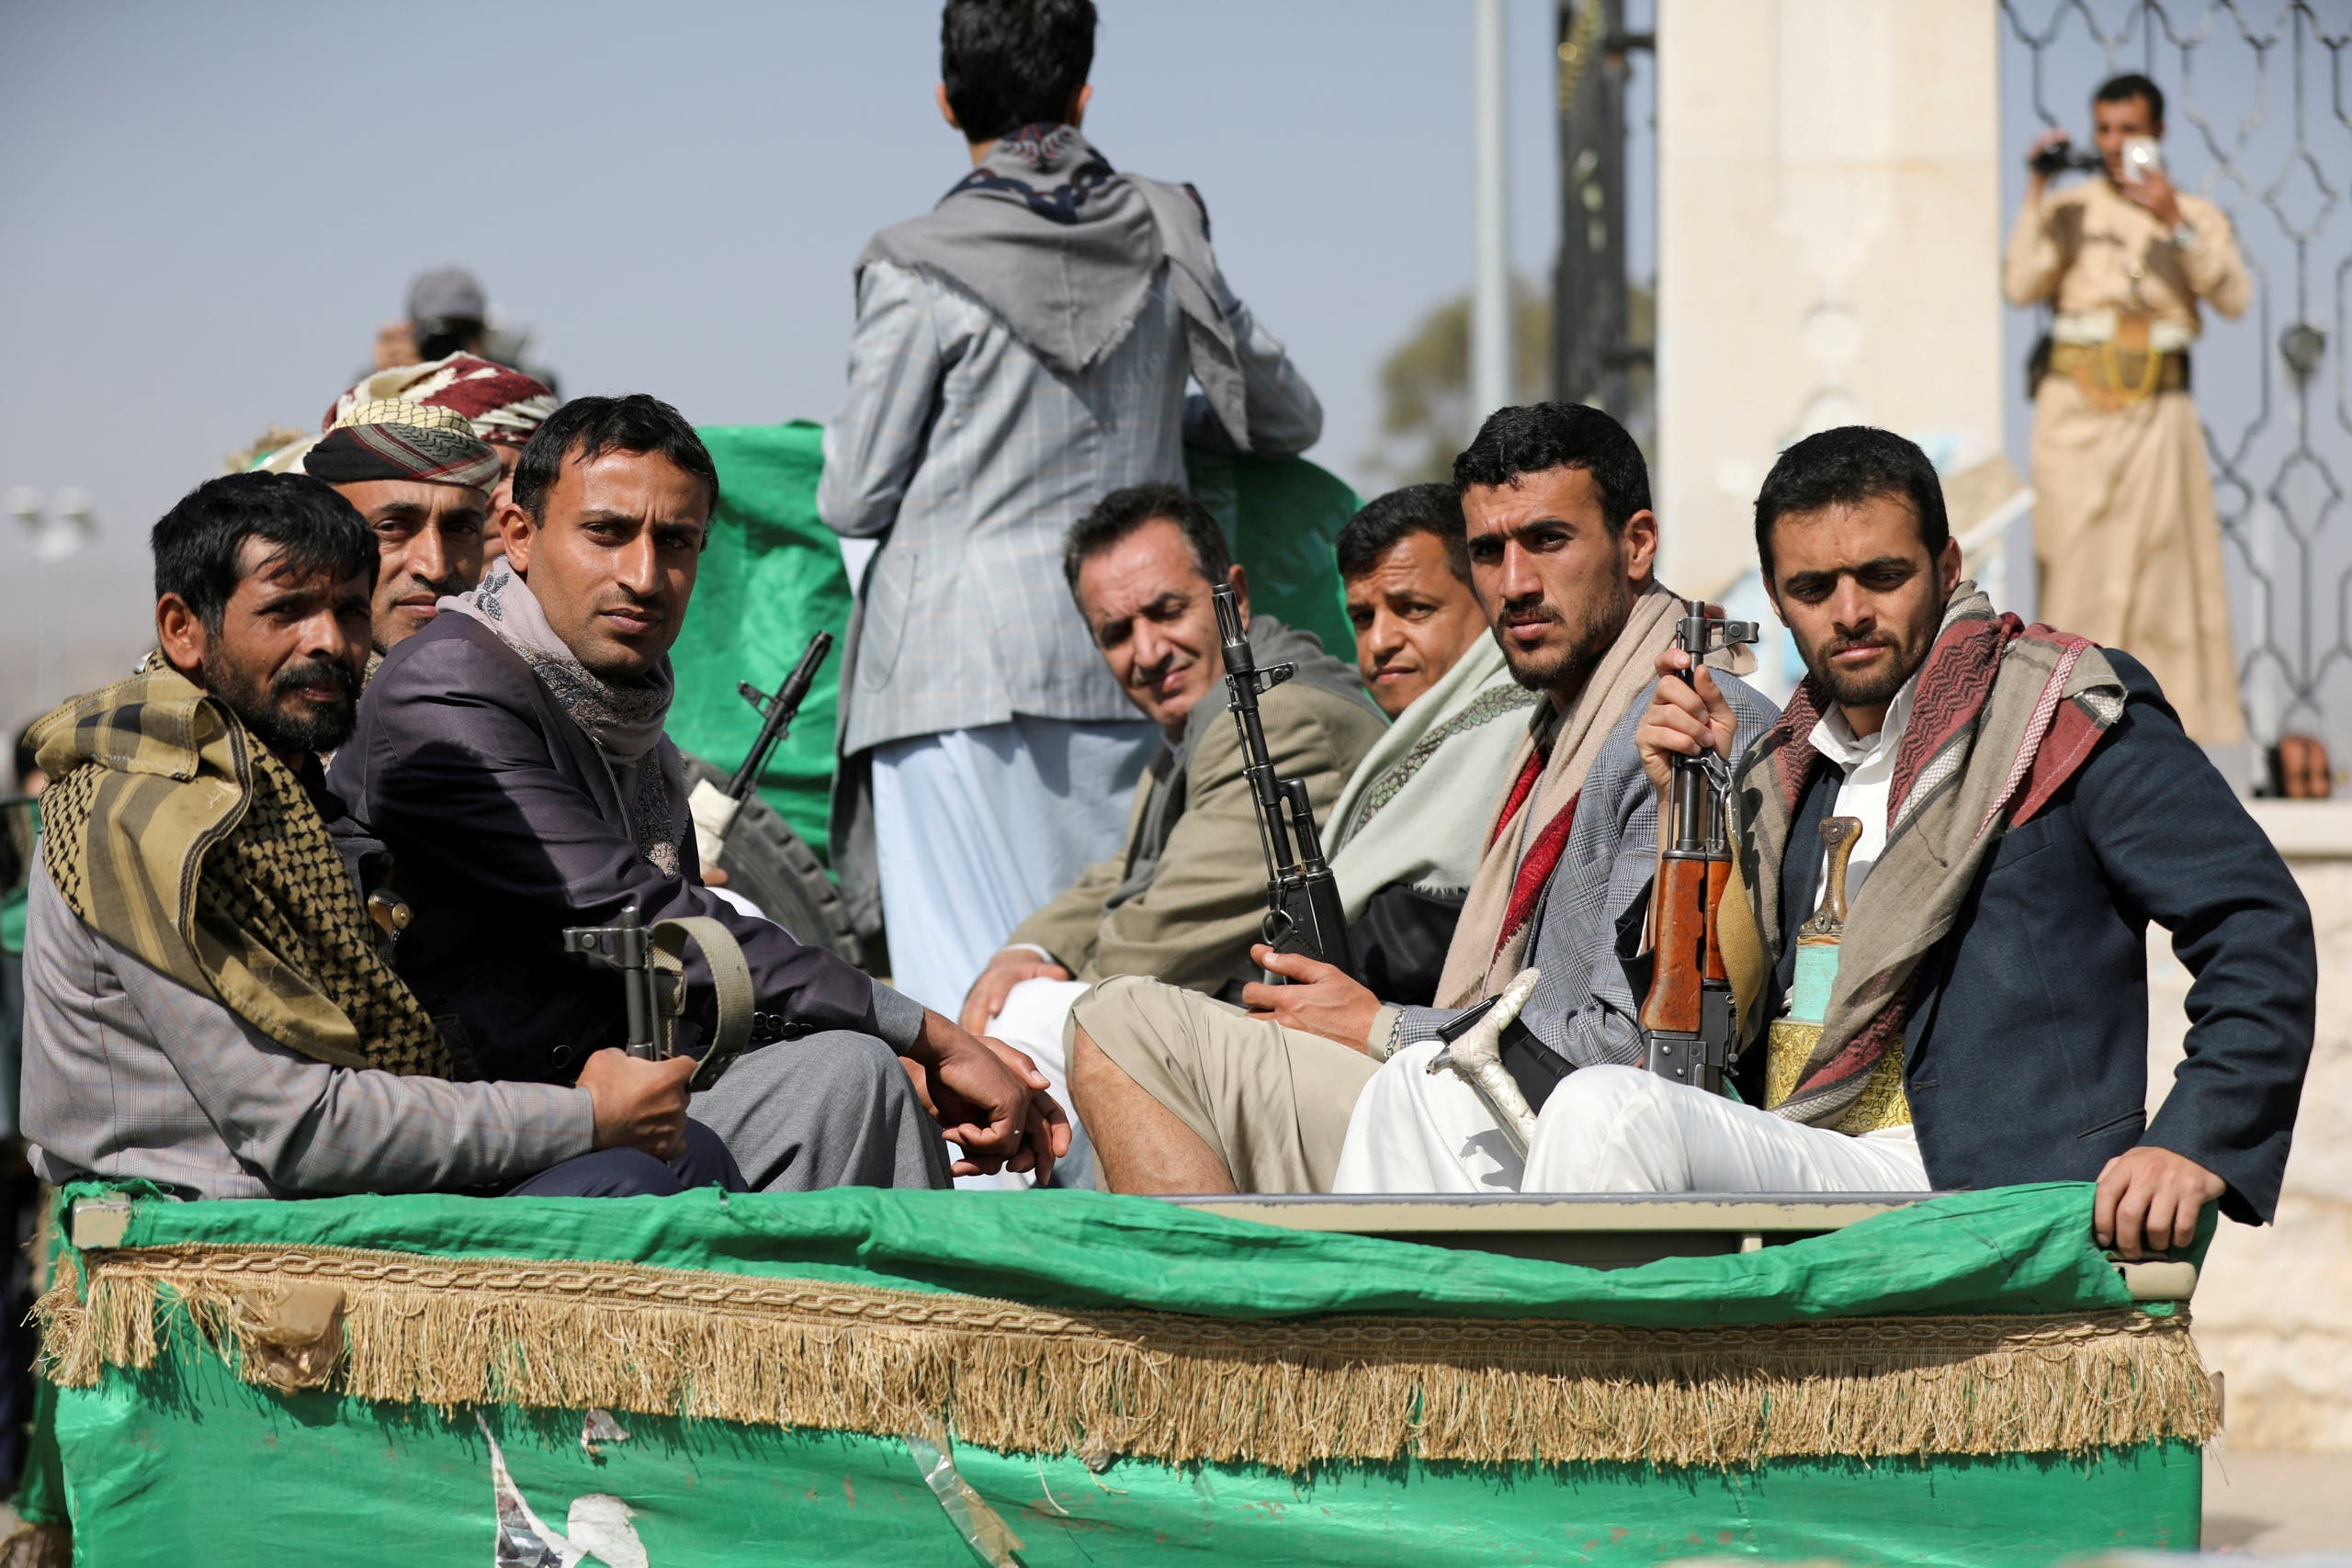 More than 4,100 Houthi violations in the health sector in 4 years